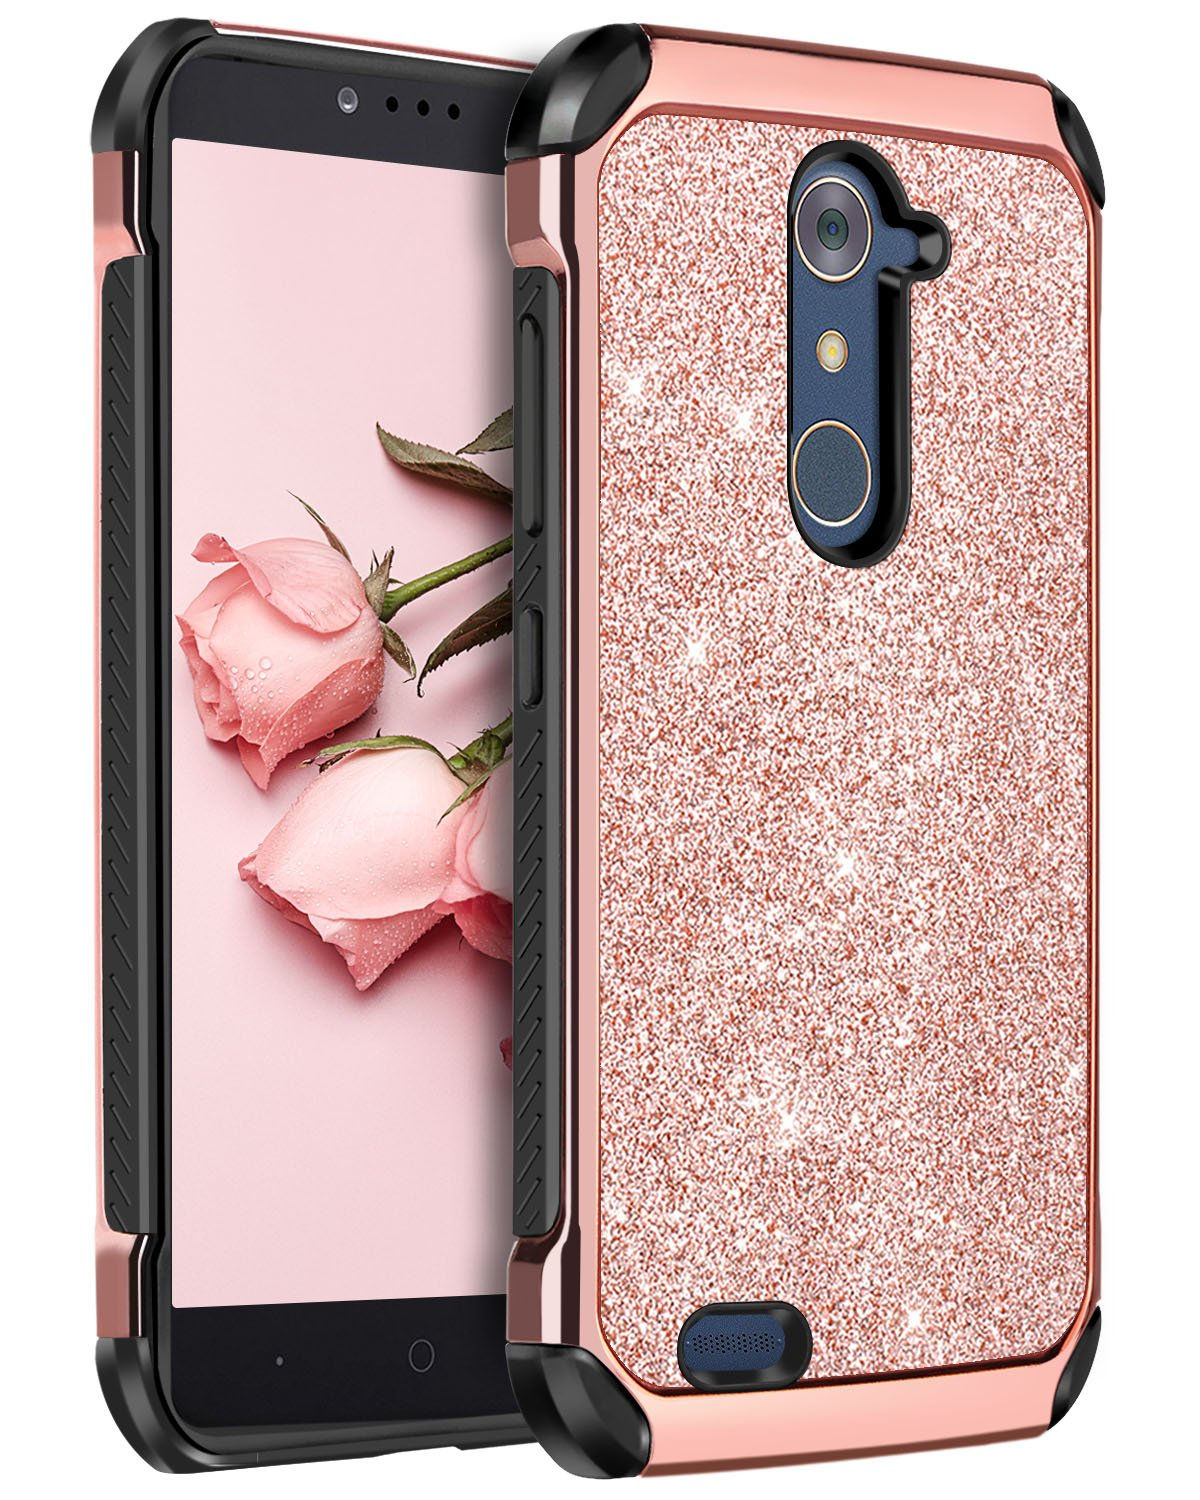 low priced 104ce 3bd0c ZTE ZMax Pro Case,ZTE Carry Z981 Case,ZTE Grand X Max 2 Case,ZTE Imperial  Max Case, BENTOBEN Bling Slim Hard Cover Shockproof Protective Case for ZTE  ...